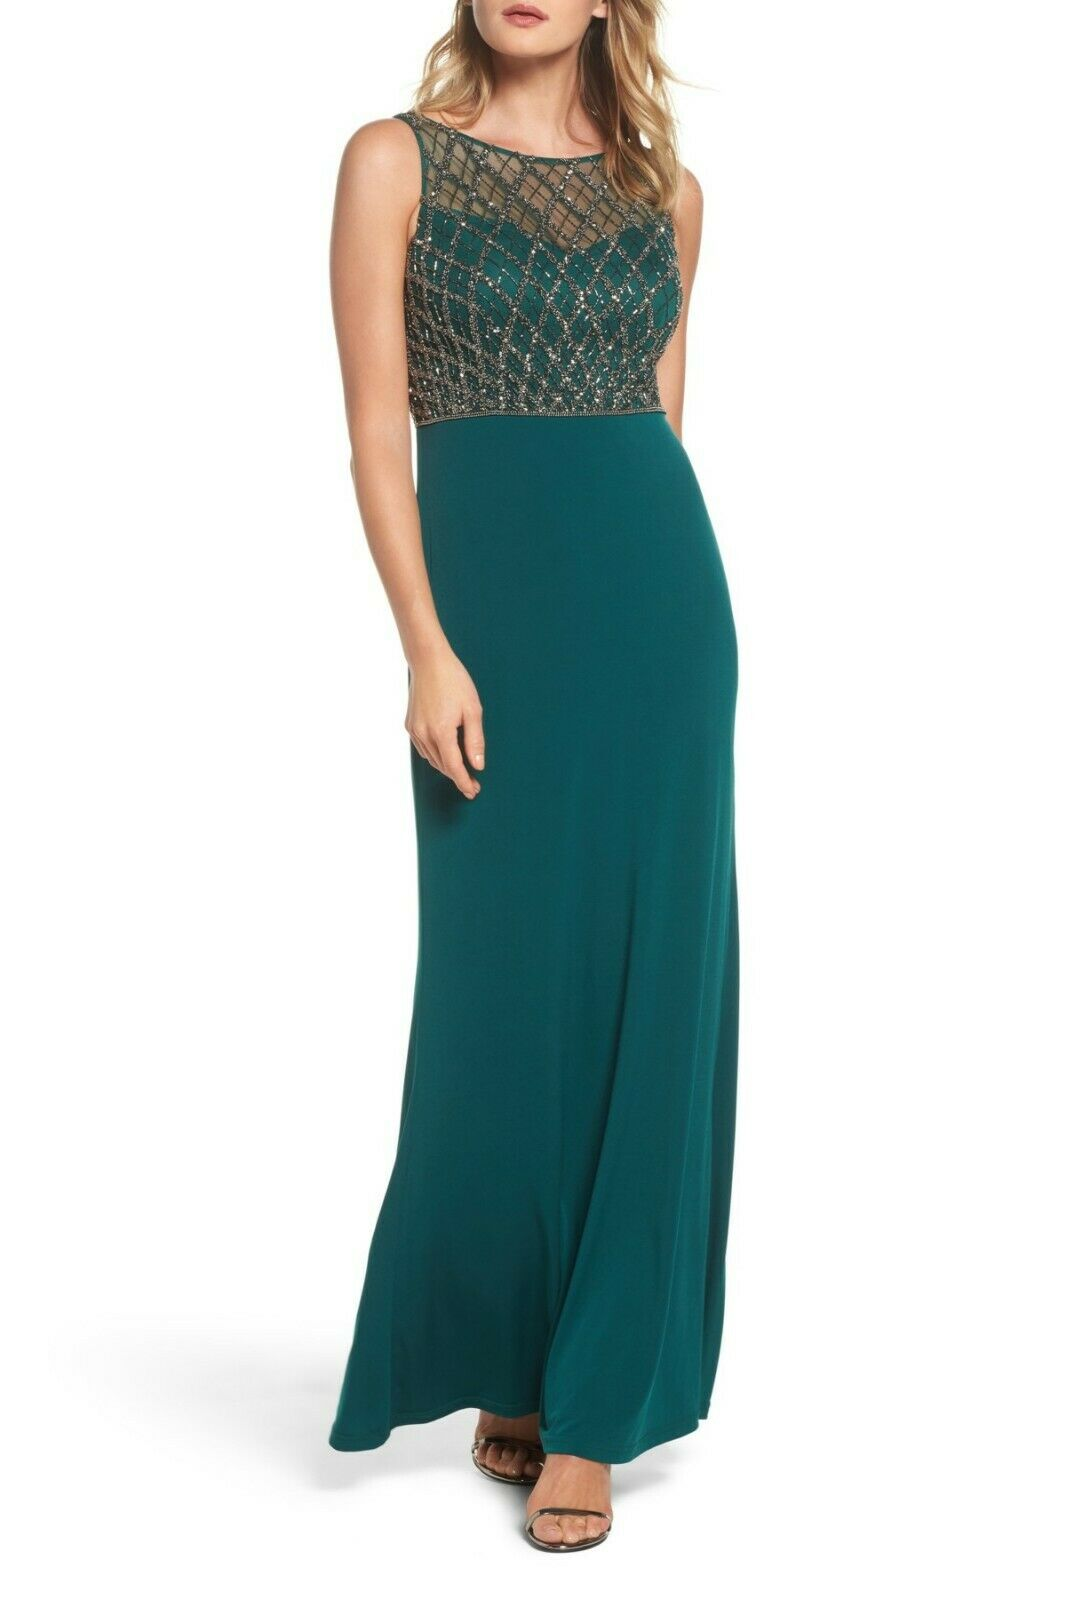 Adrianna Papell Hunter Green Mermaid Gown Beaded Illusion Bodice Size 16 NWT